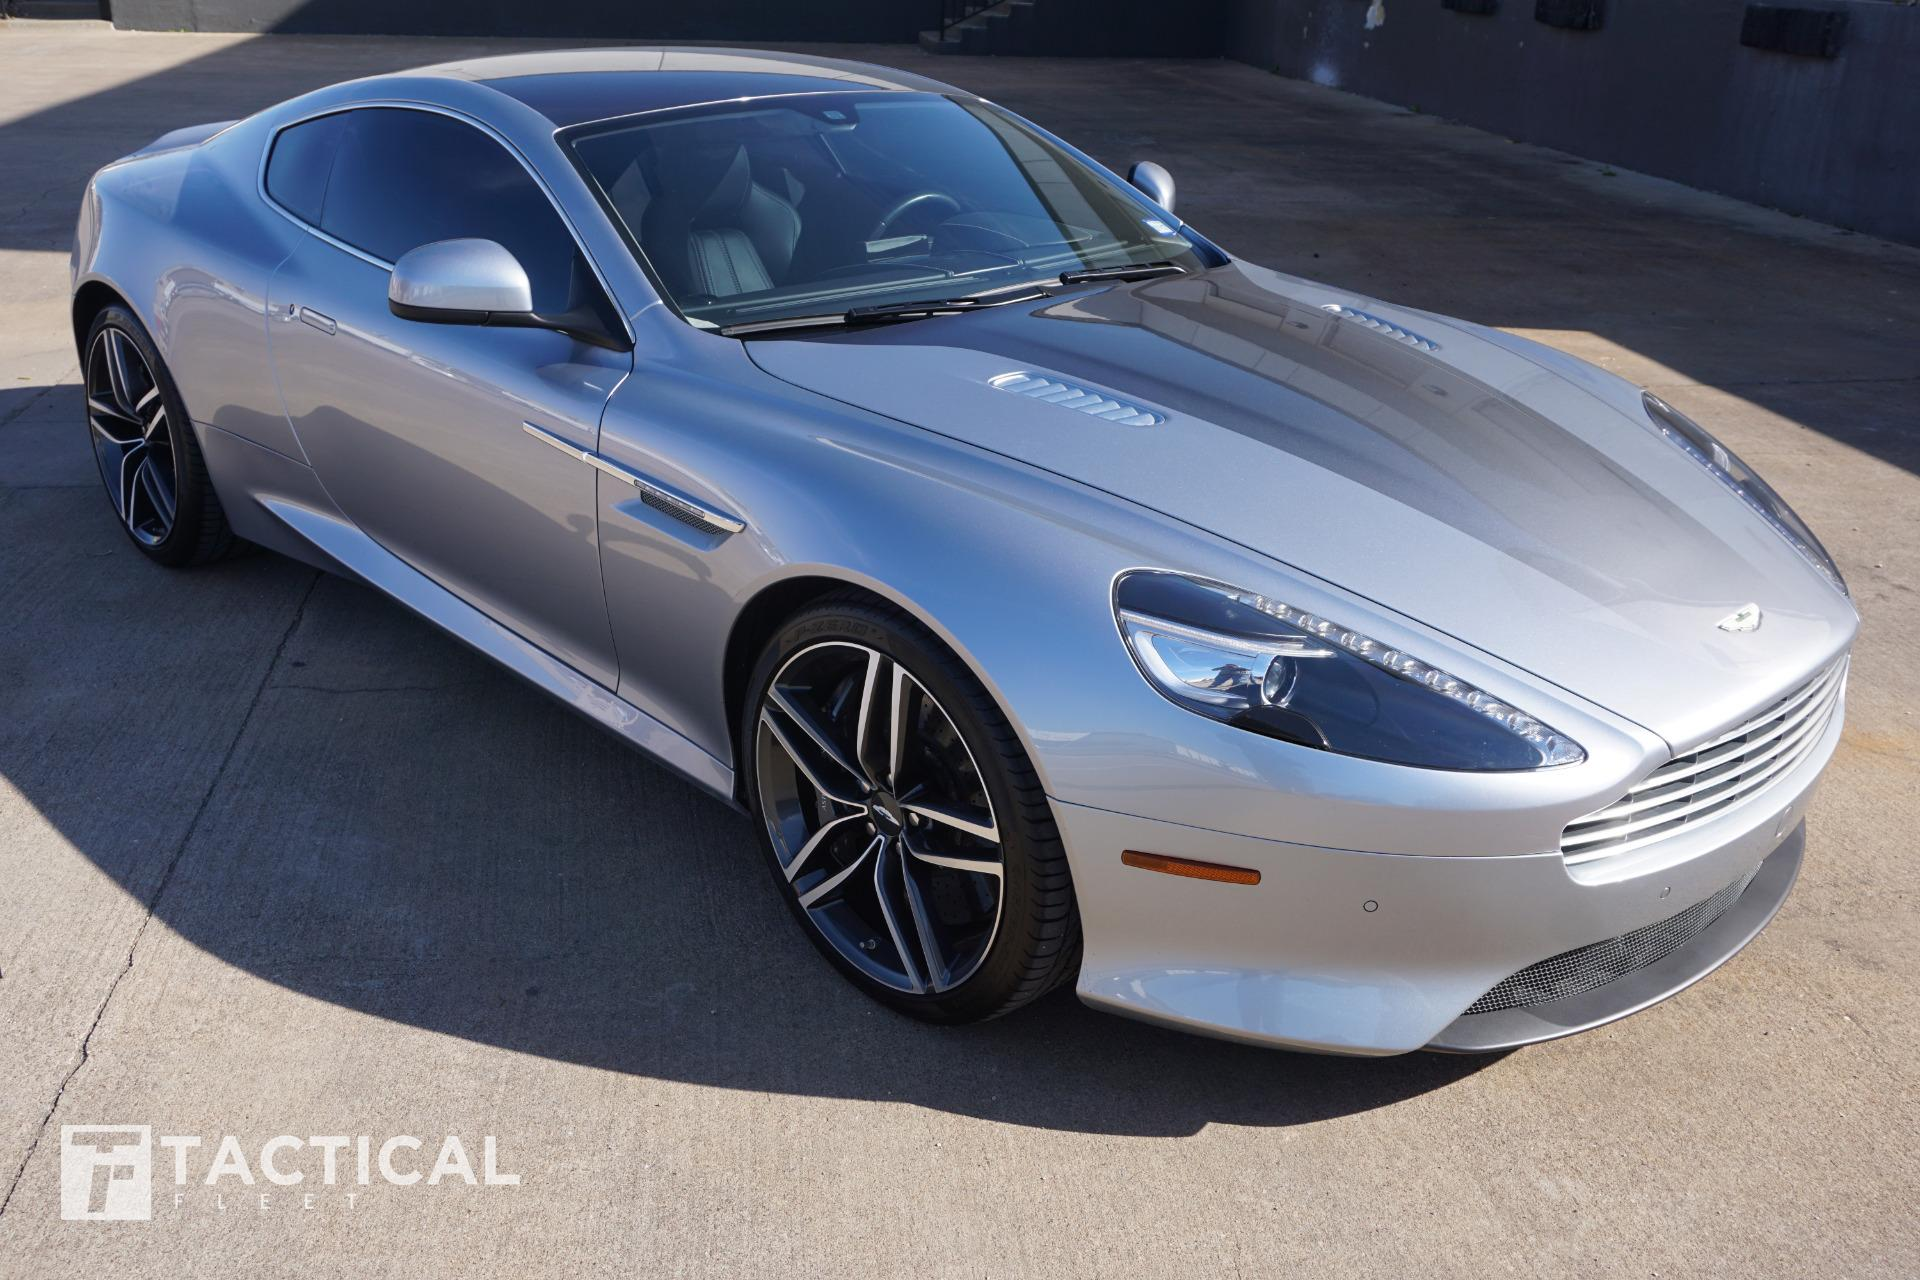 used 2014 aston martin db9 for sale ($95,900)   tactical fleet stock